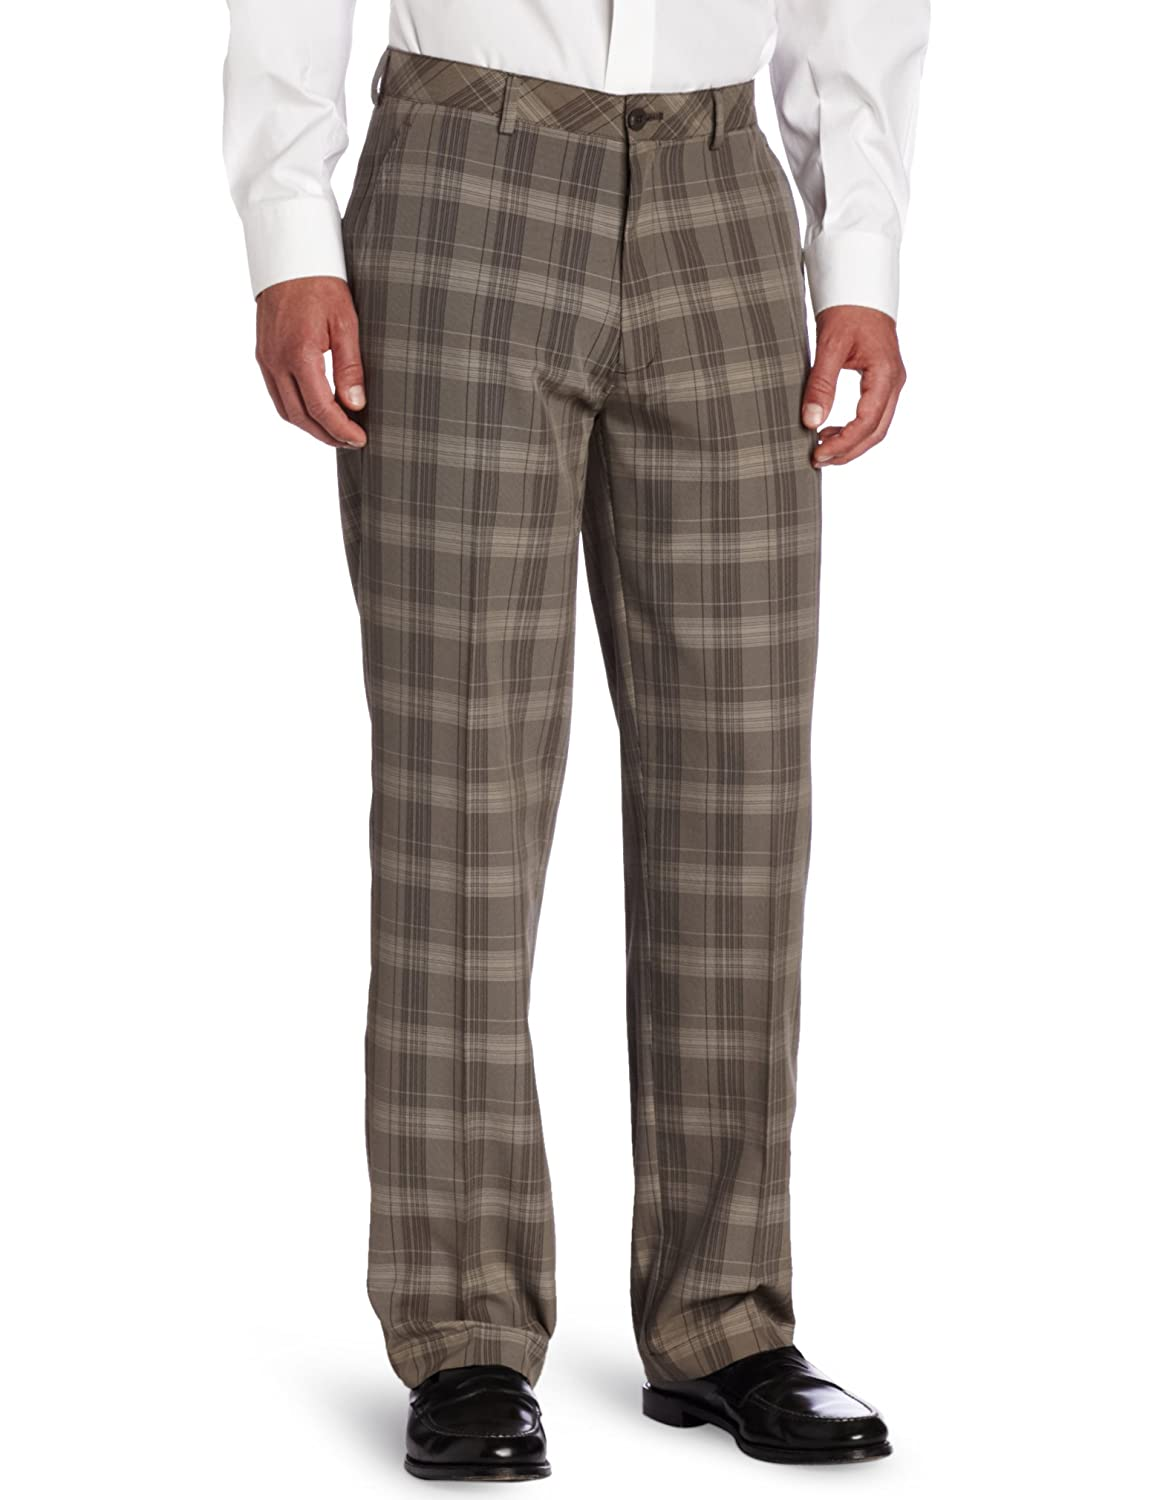 1920s Men's Pants History: Oxford Bags, Plus Four Knickers, Overalls Glen Plaid Straight Fit Flat Front Pant $49.19 AT vintagedancer.com